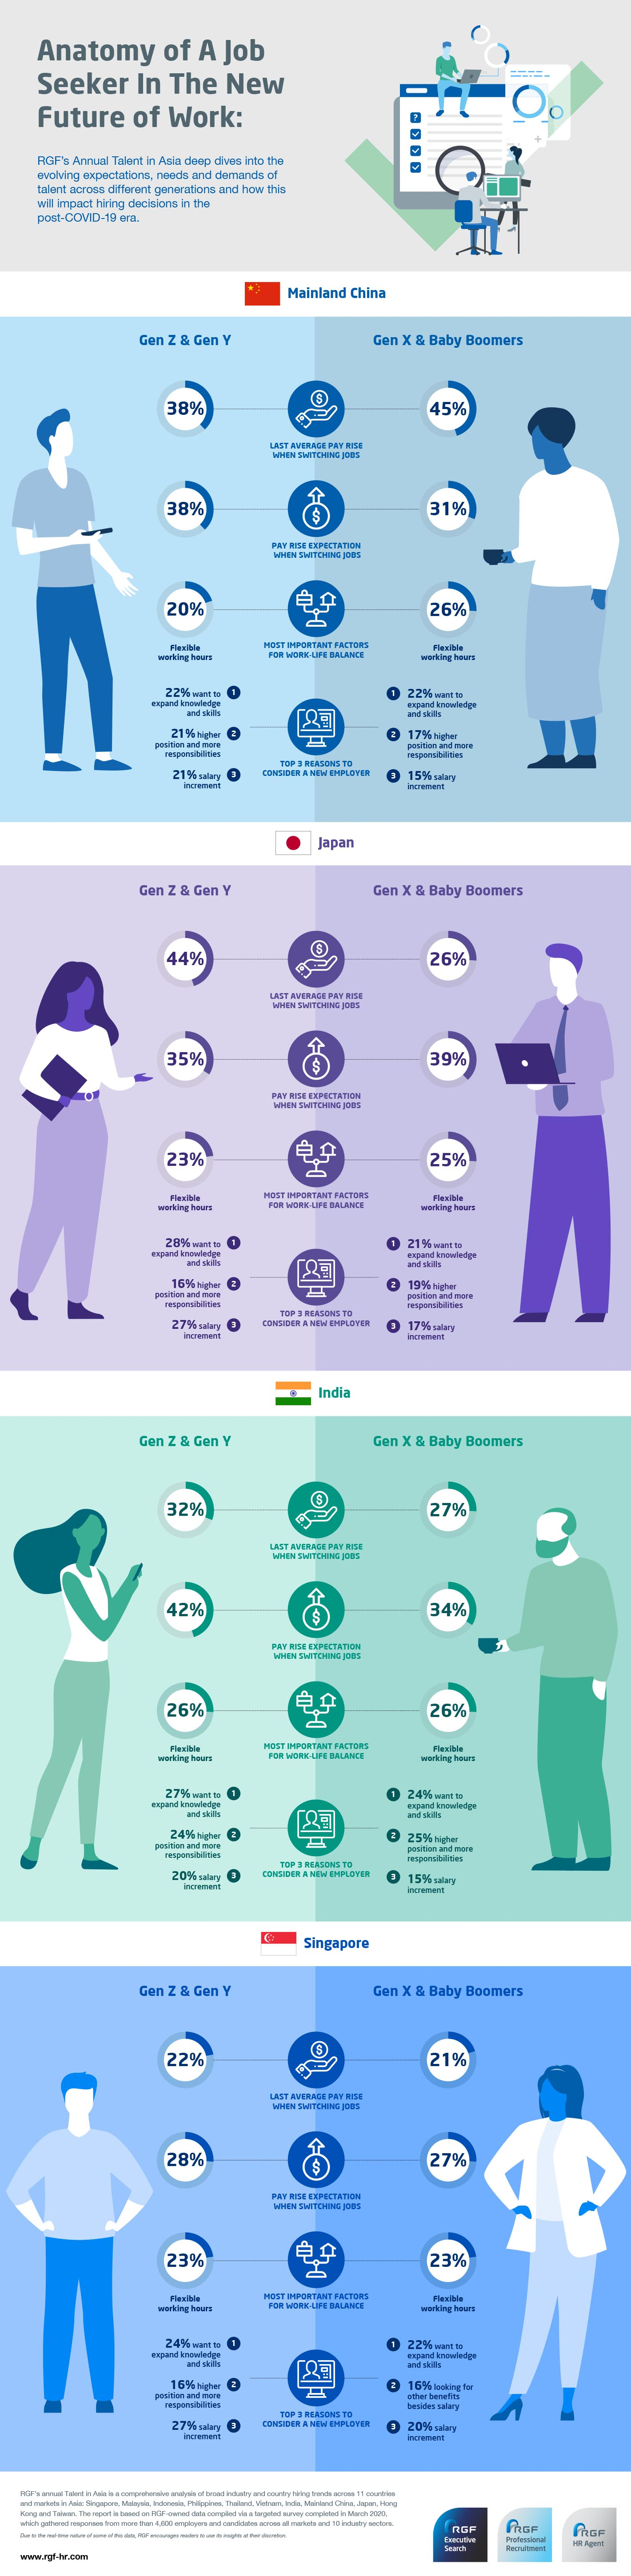 How does the profile of job seeker in the new future of work look like across different generations and countries?